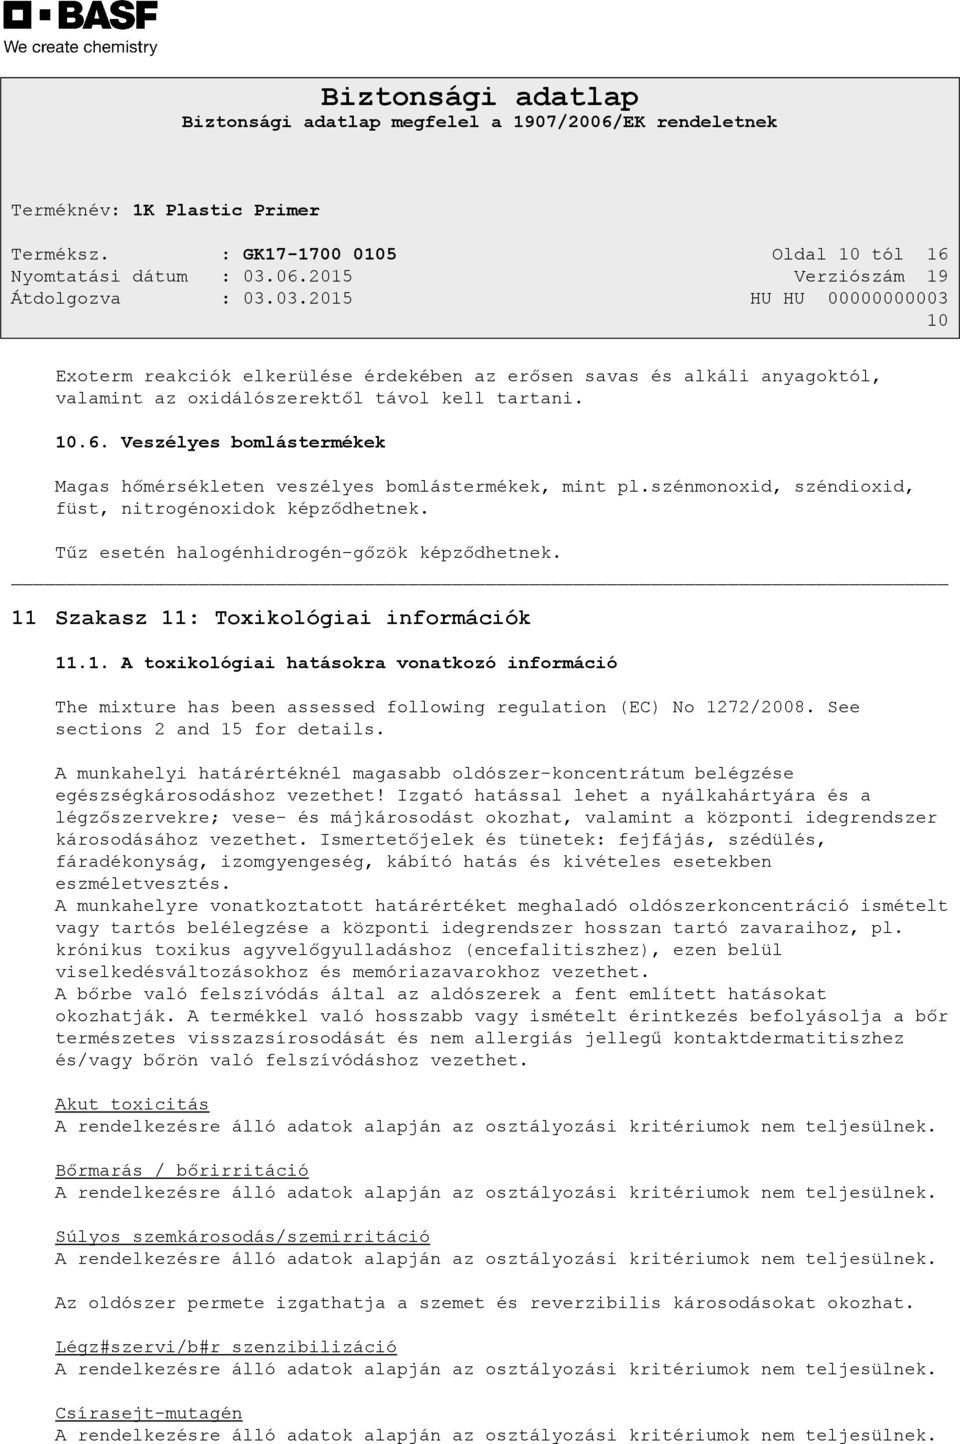 Szakasz 11: Toxikológiai információk 11.1. A toxikológiai hatásokra vonatkozó információ The mixture has been assessed following regulation (EC) No 1272/2008. See sections 2 and 15 for details.